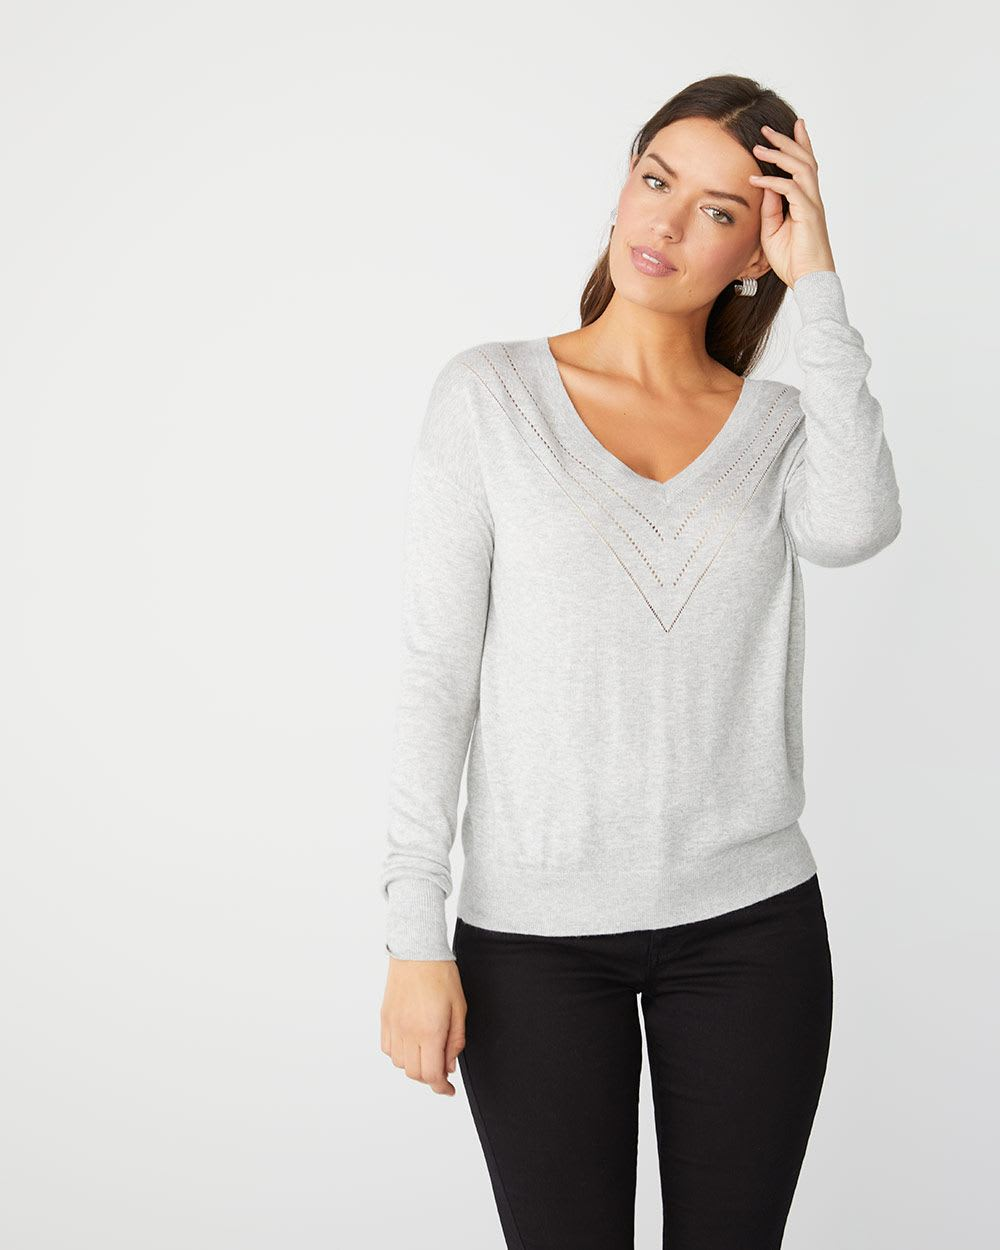 Relax Fit Lightweight Cashmere-like sweater